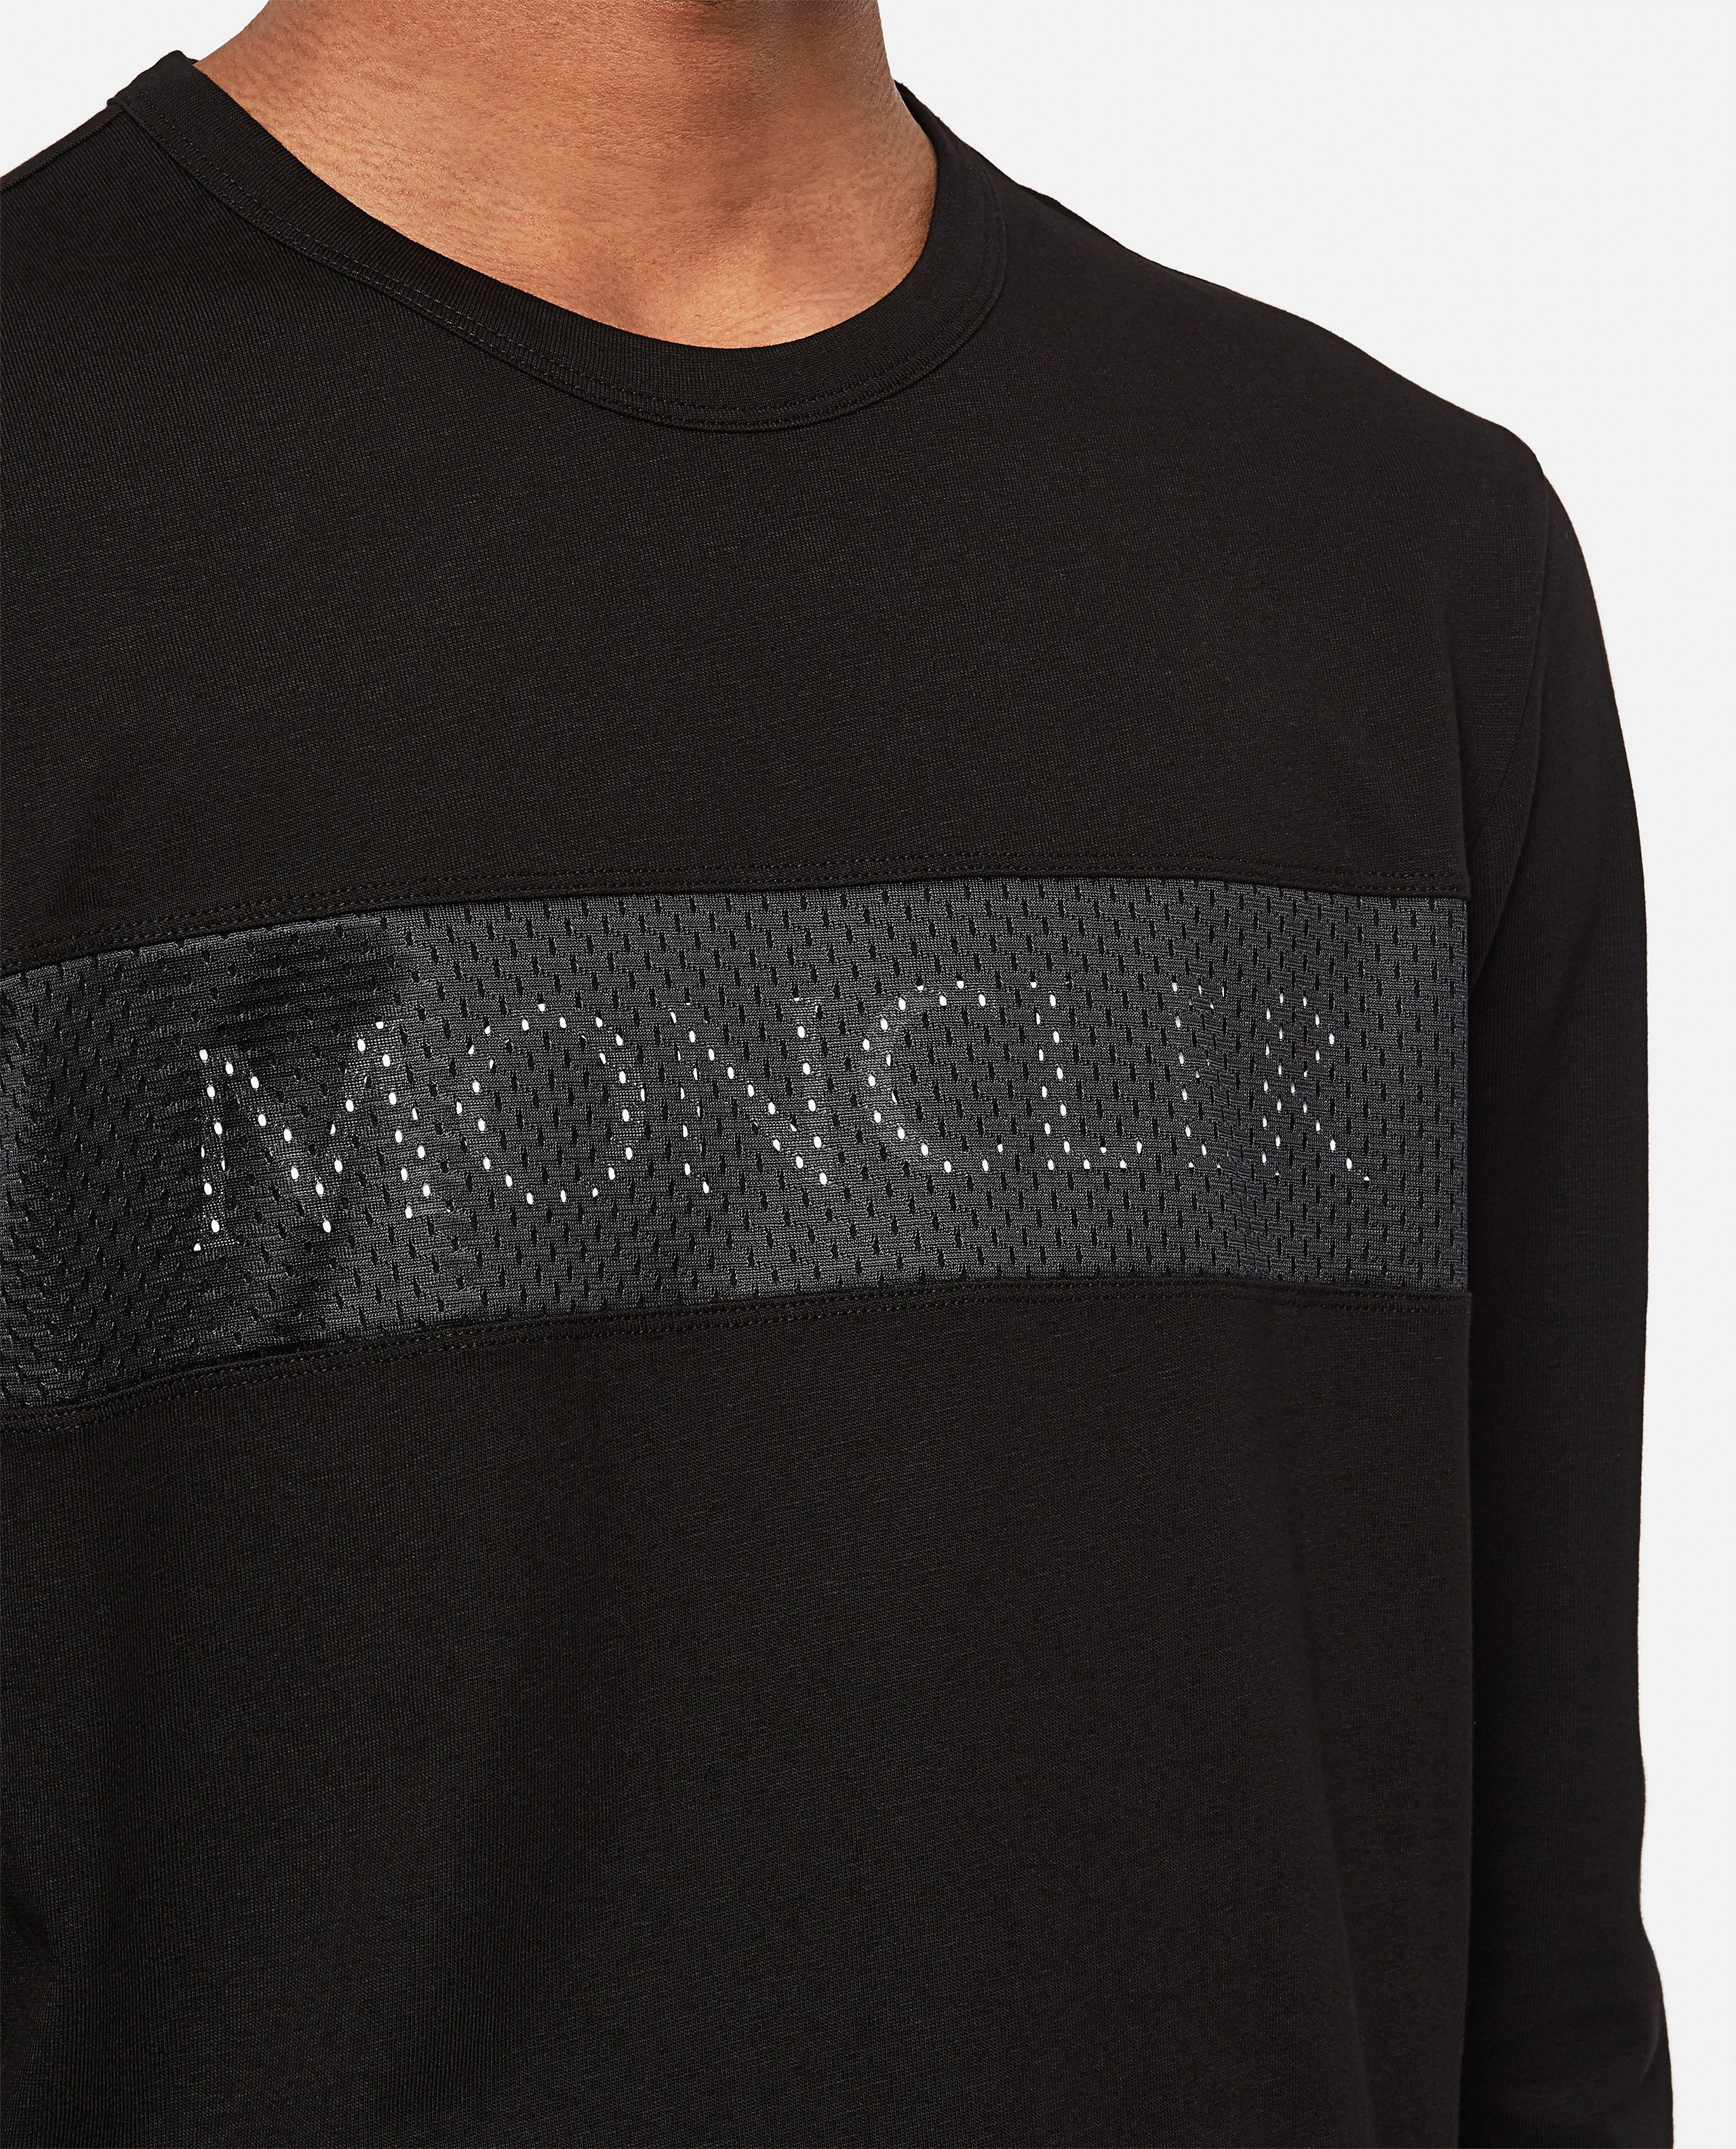 T-shirt with sponge logo application Men Moncler 000308600045269 4